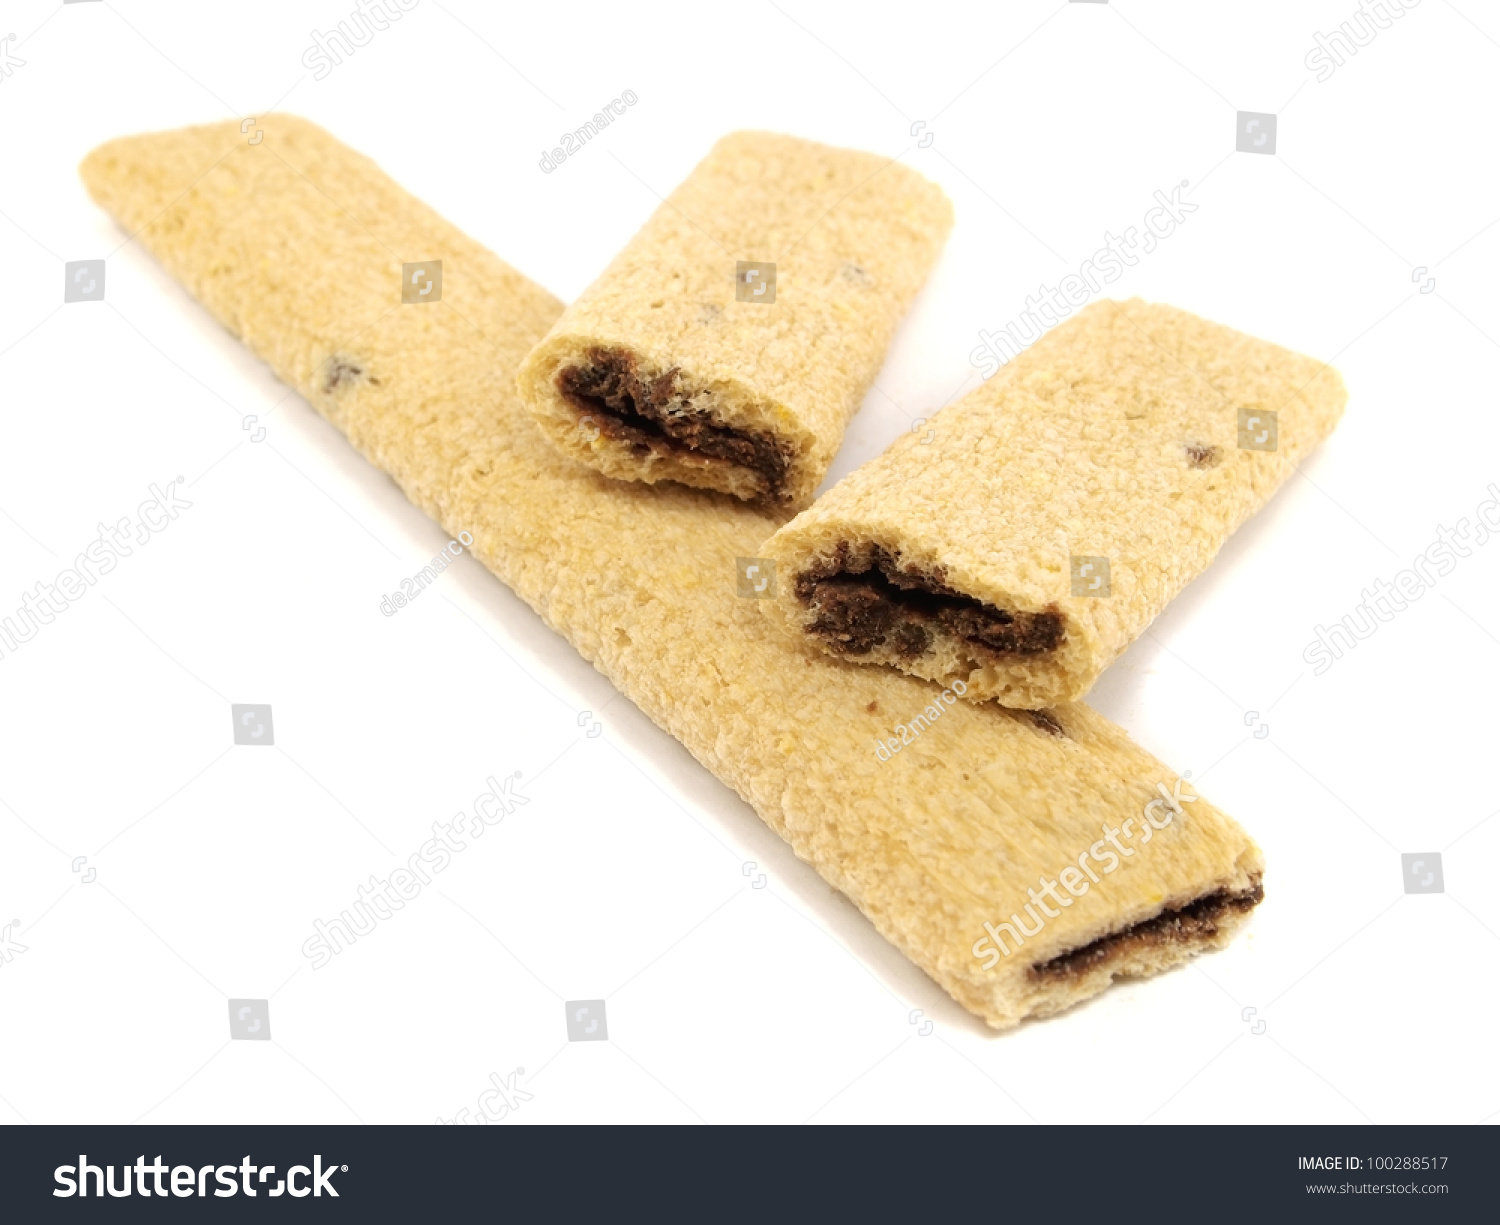 Cookies with a chocolate stuffing on a white background #100288517